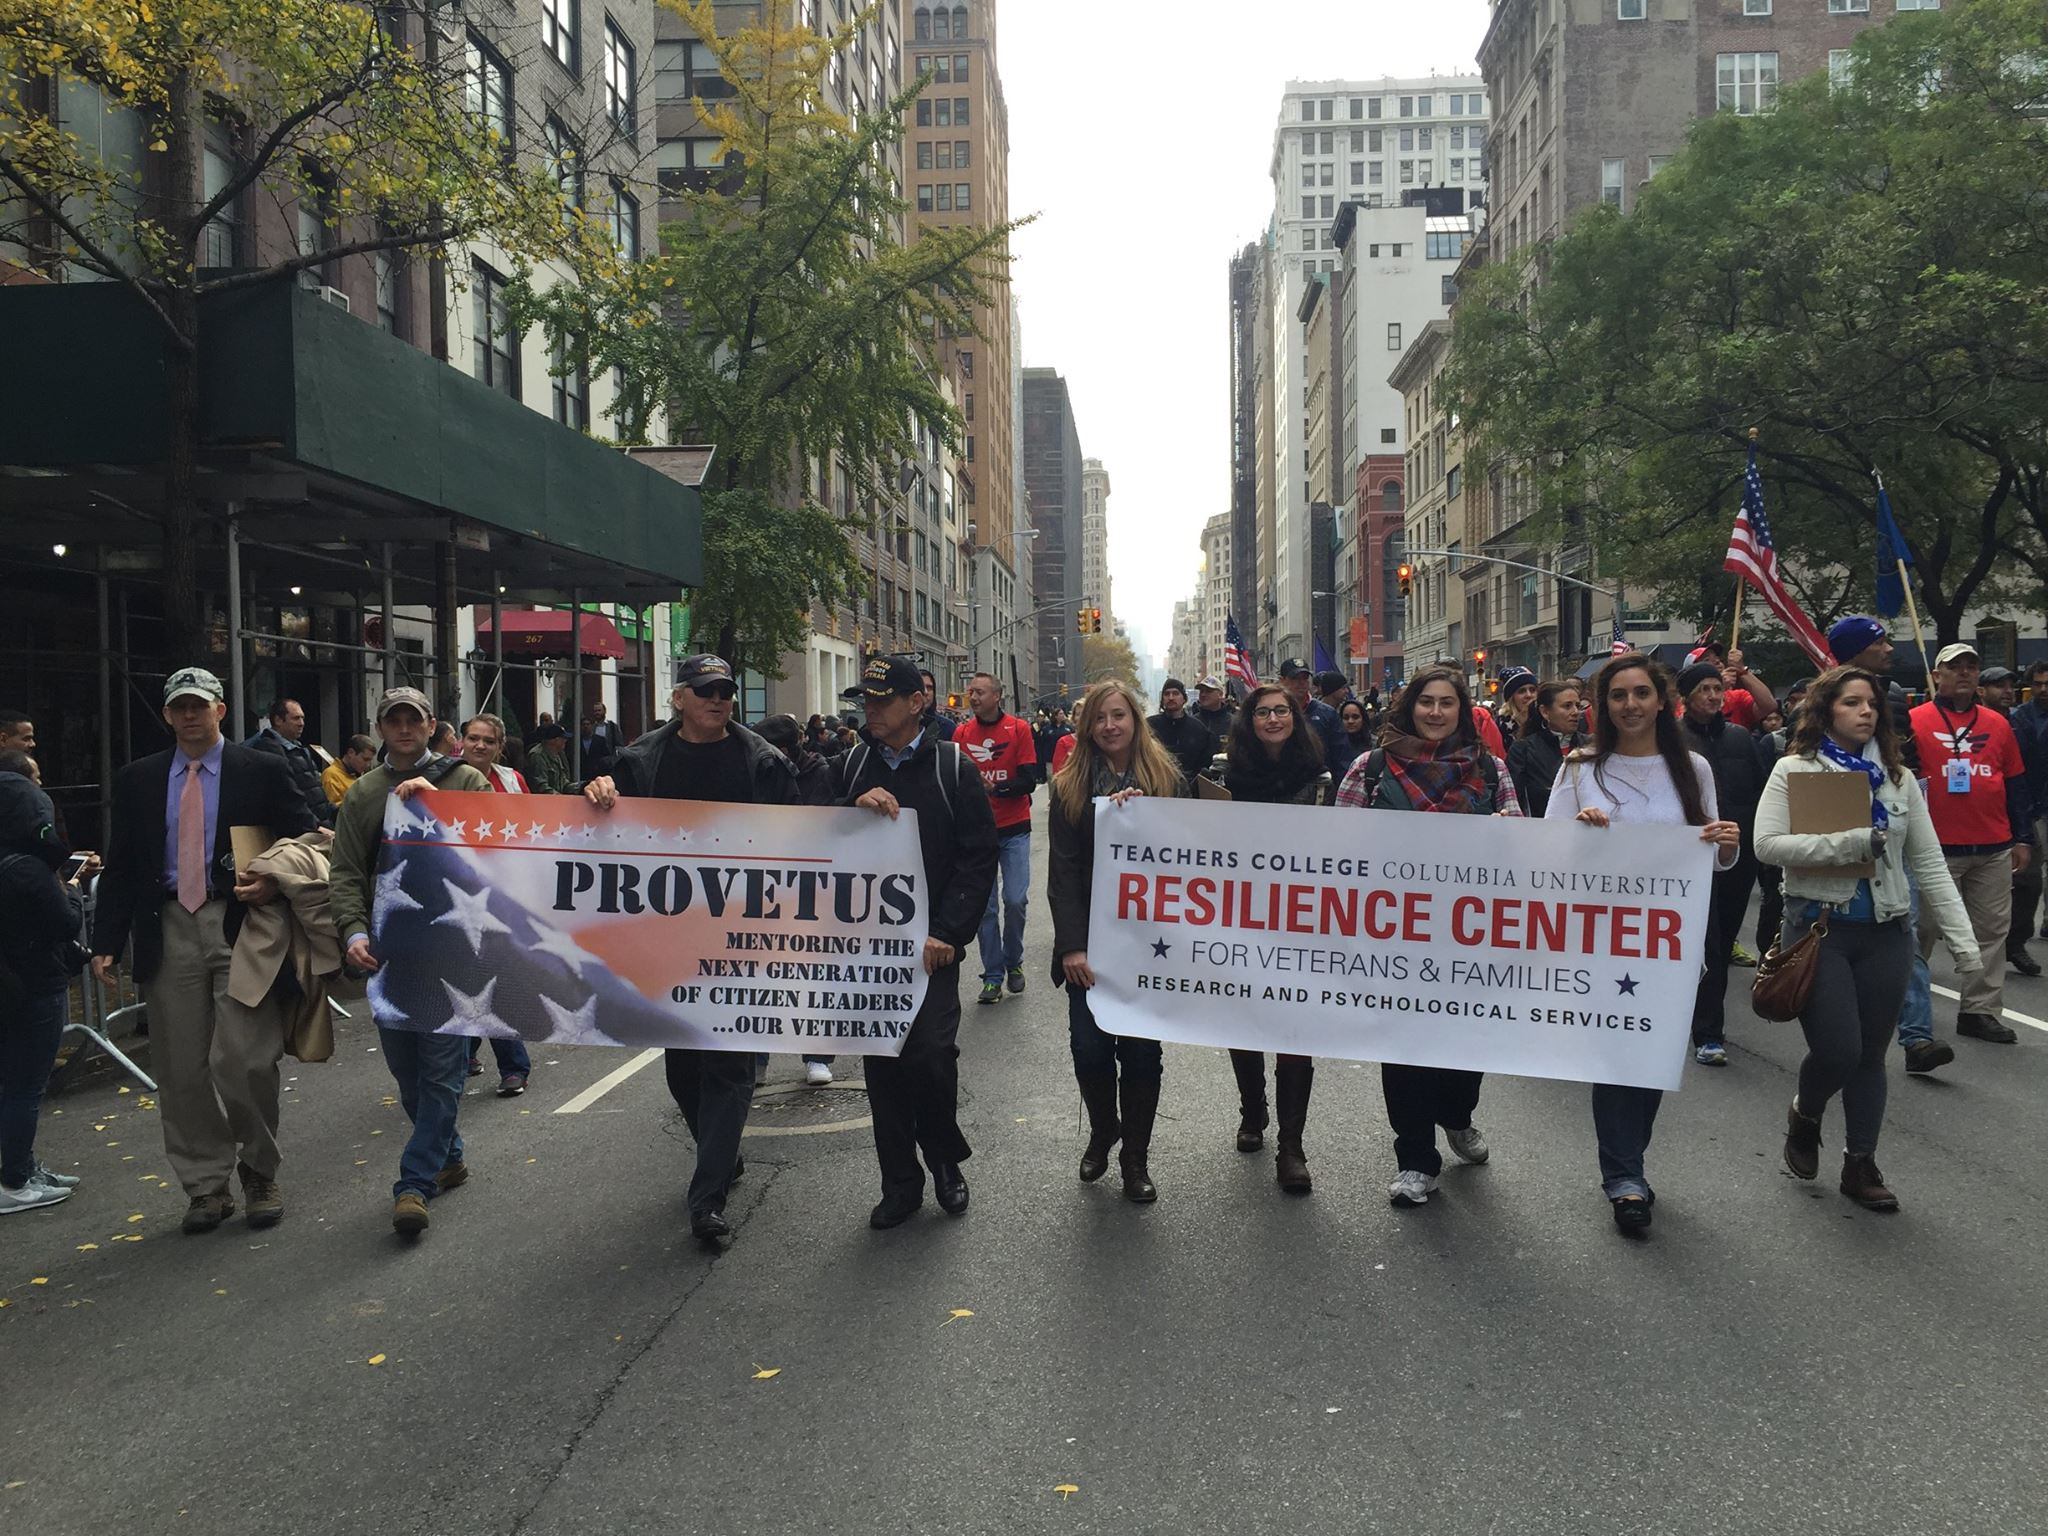 Walking with PROVETUS and Resilience Center banners